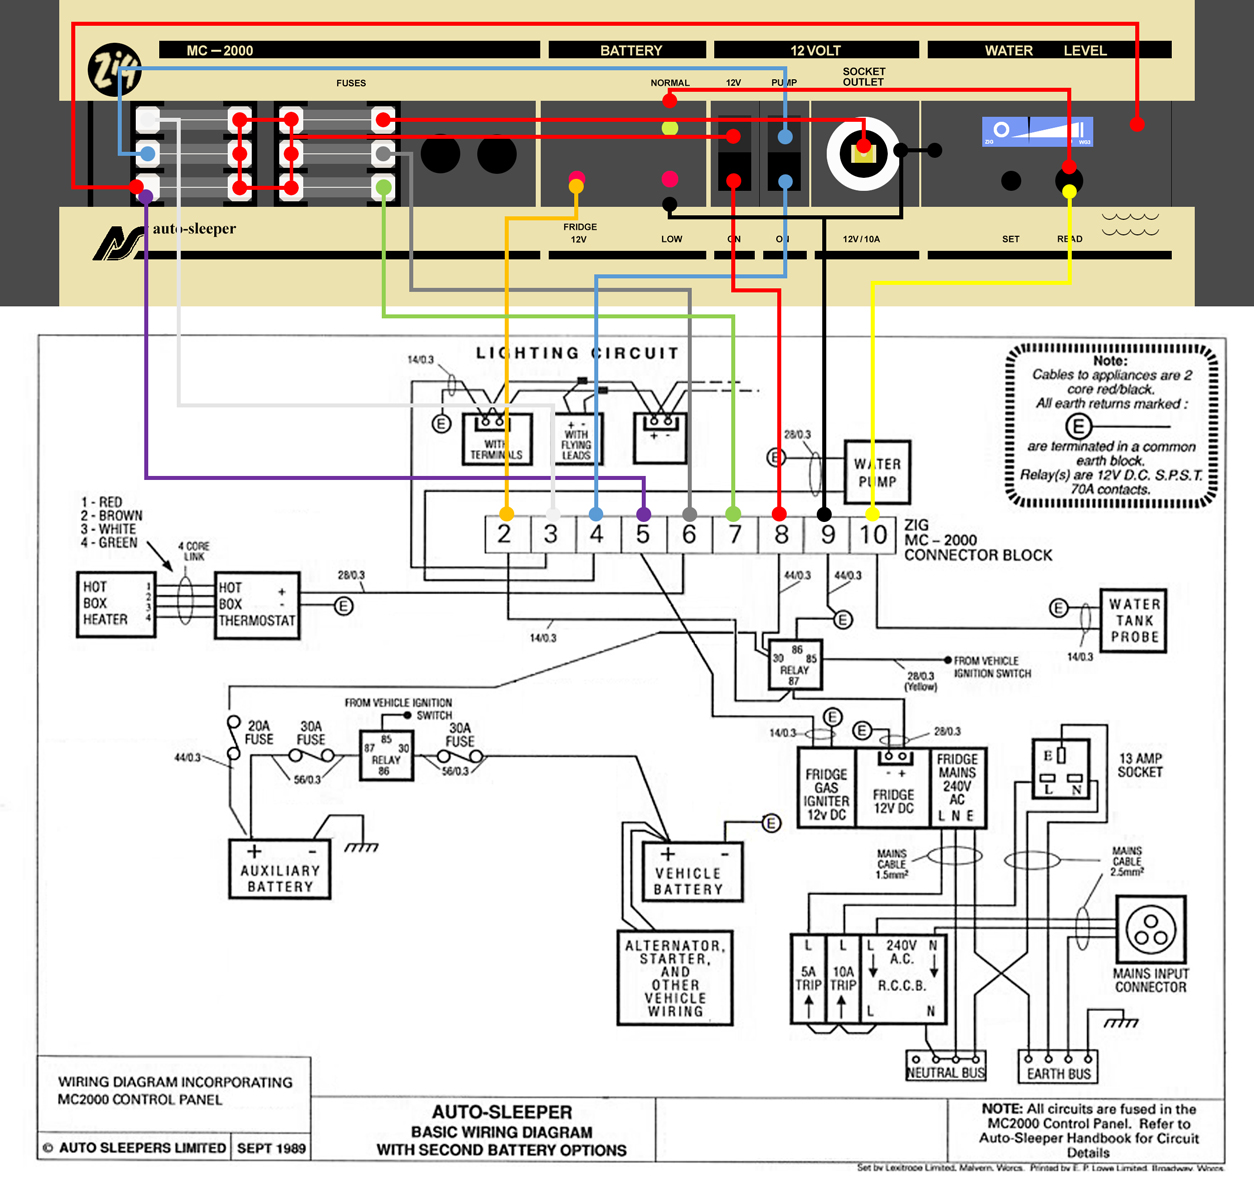 zig mc 2000 wiring vw t25 sir adventure contact mc in wall wiring diagram install  [ 1254 x 1197 Pixel ]